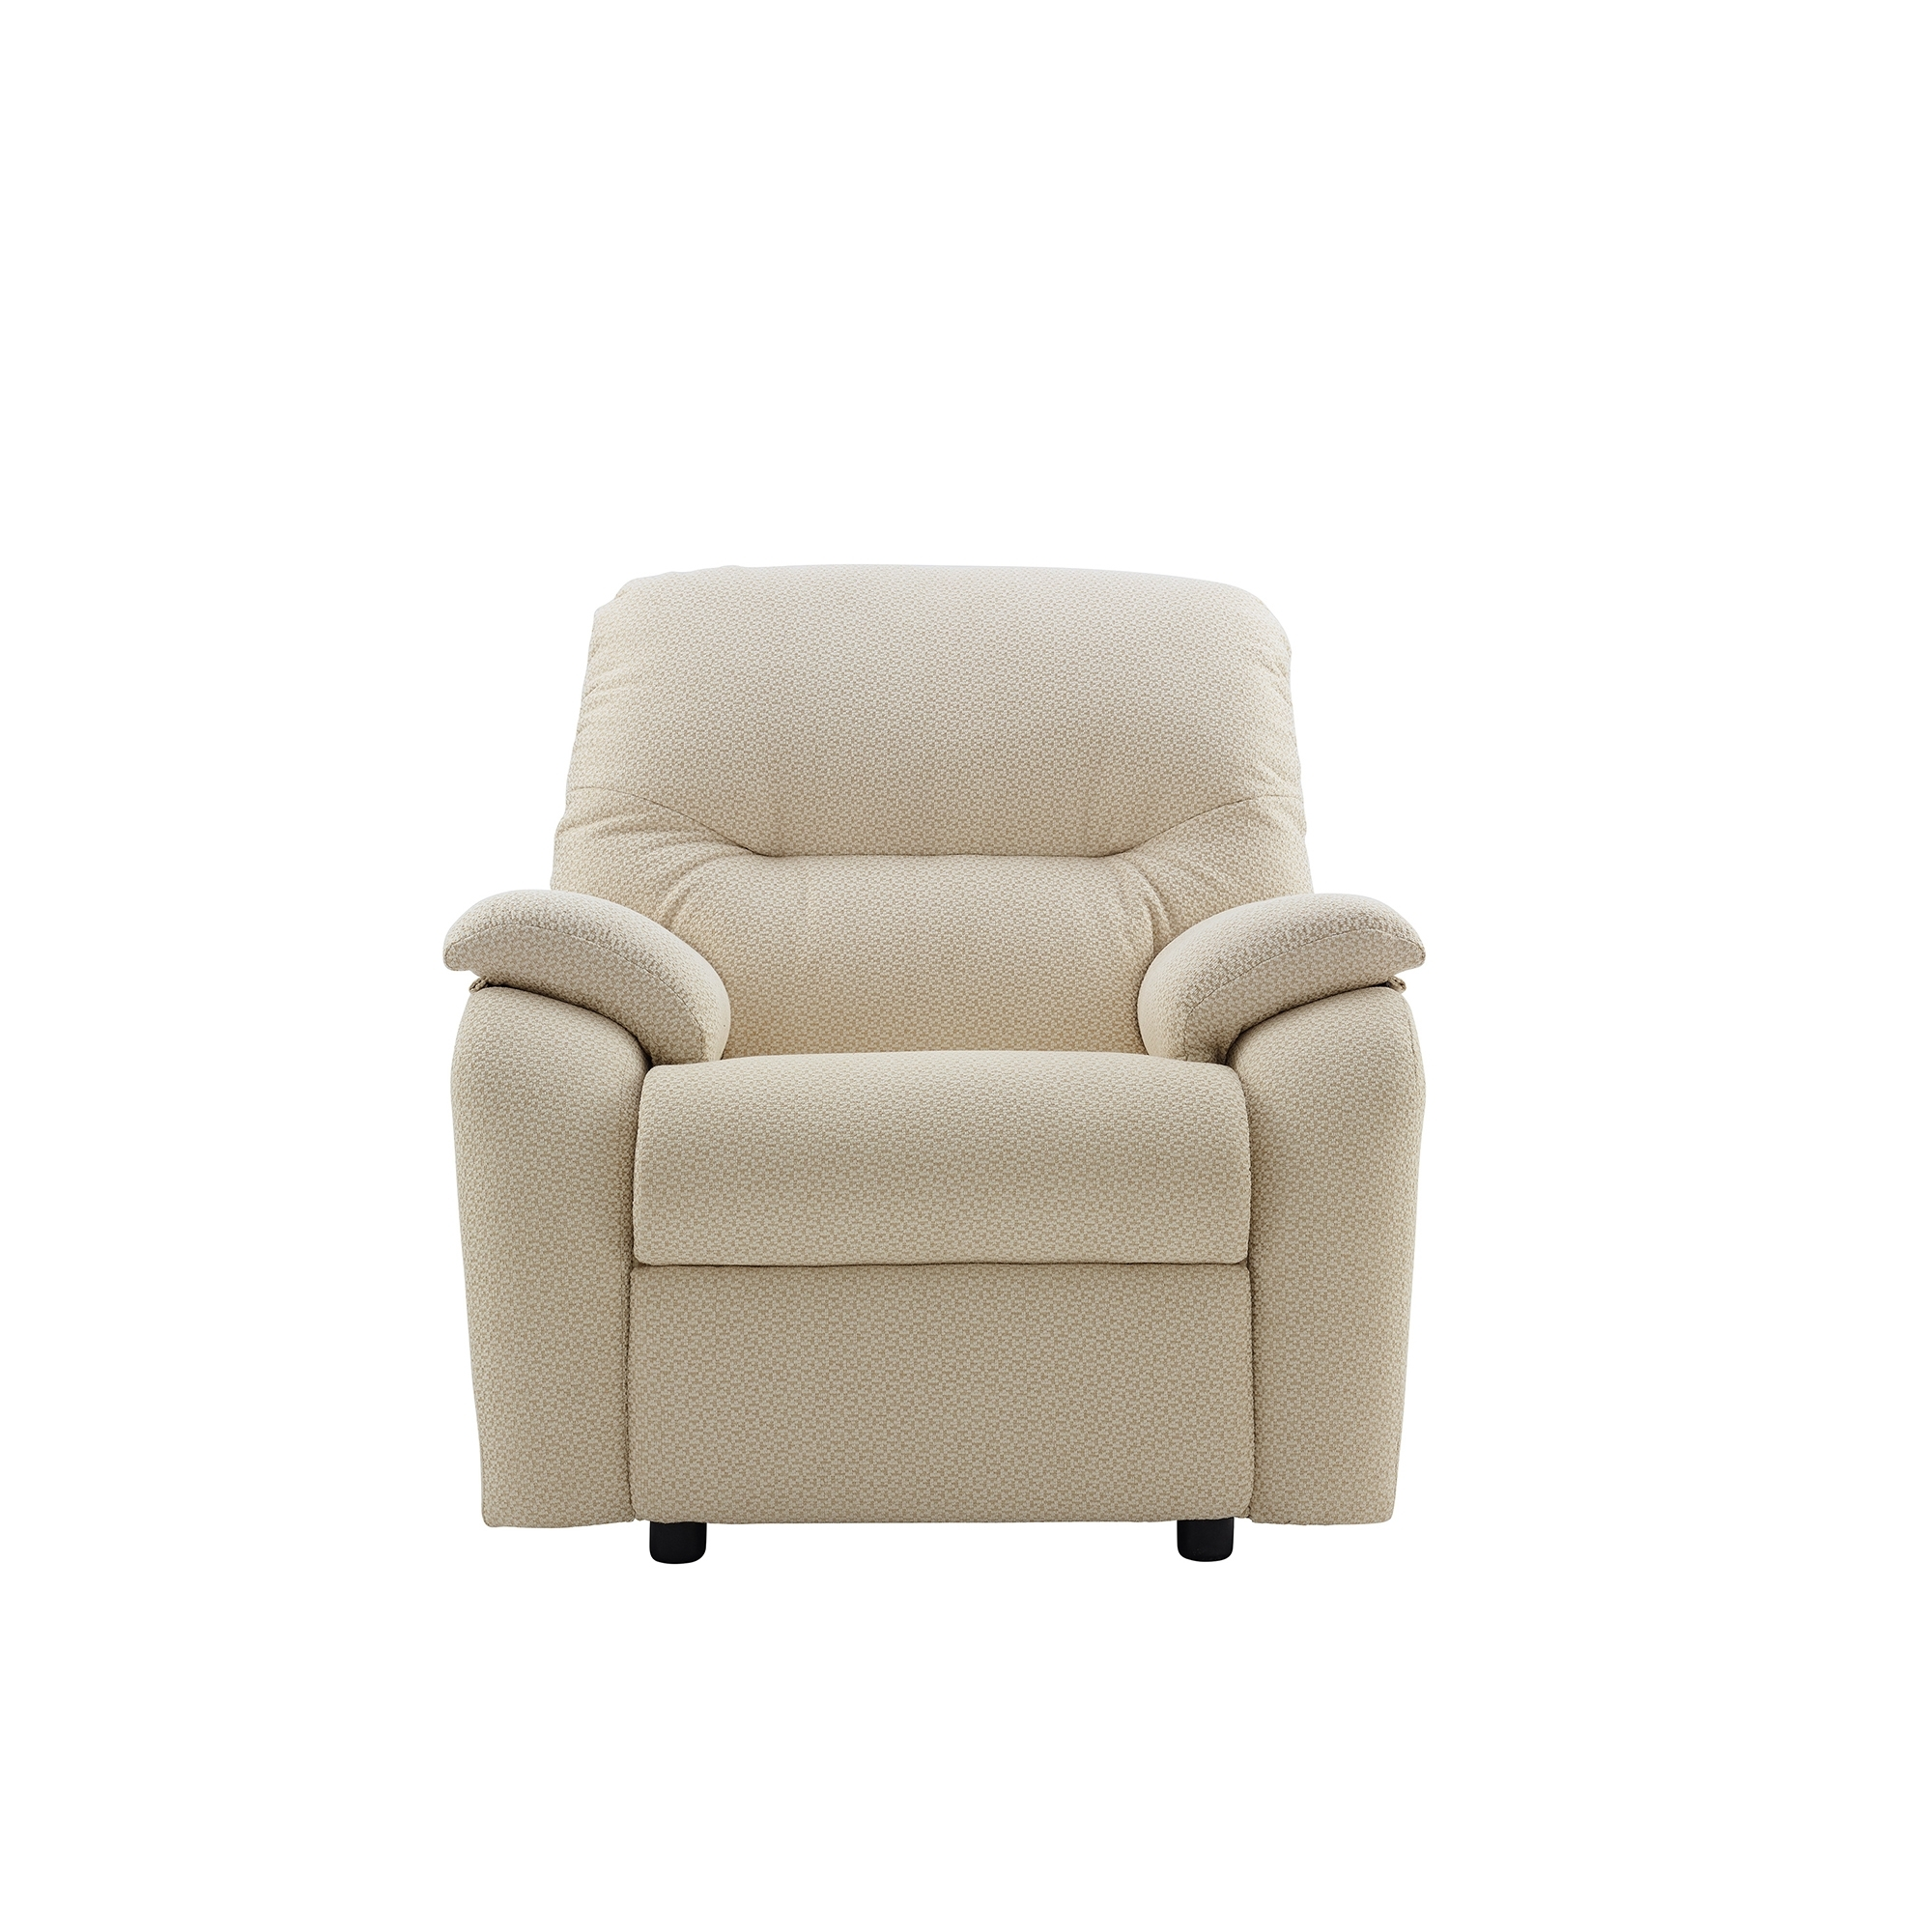 recliner sofa covers uk upholstery cost birmingham buy g plan mistral soft cover power action chair